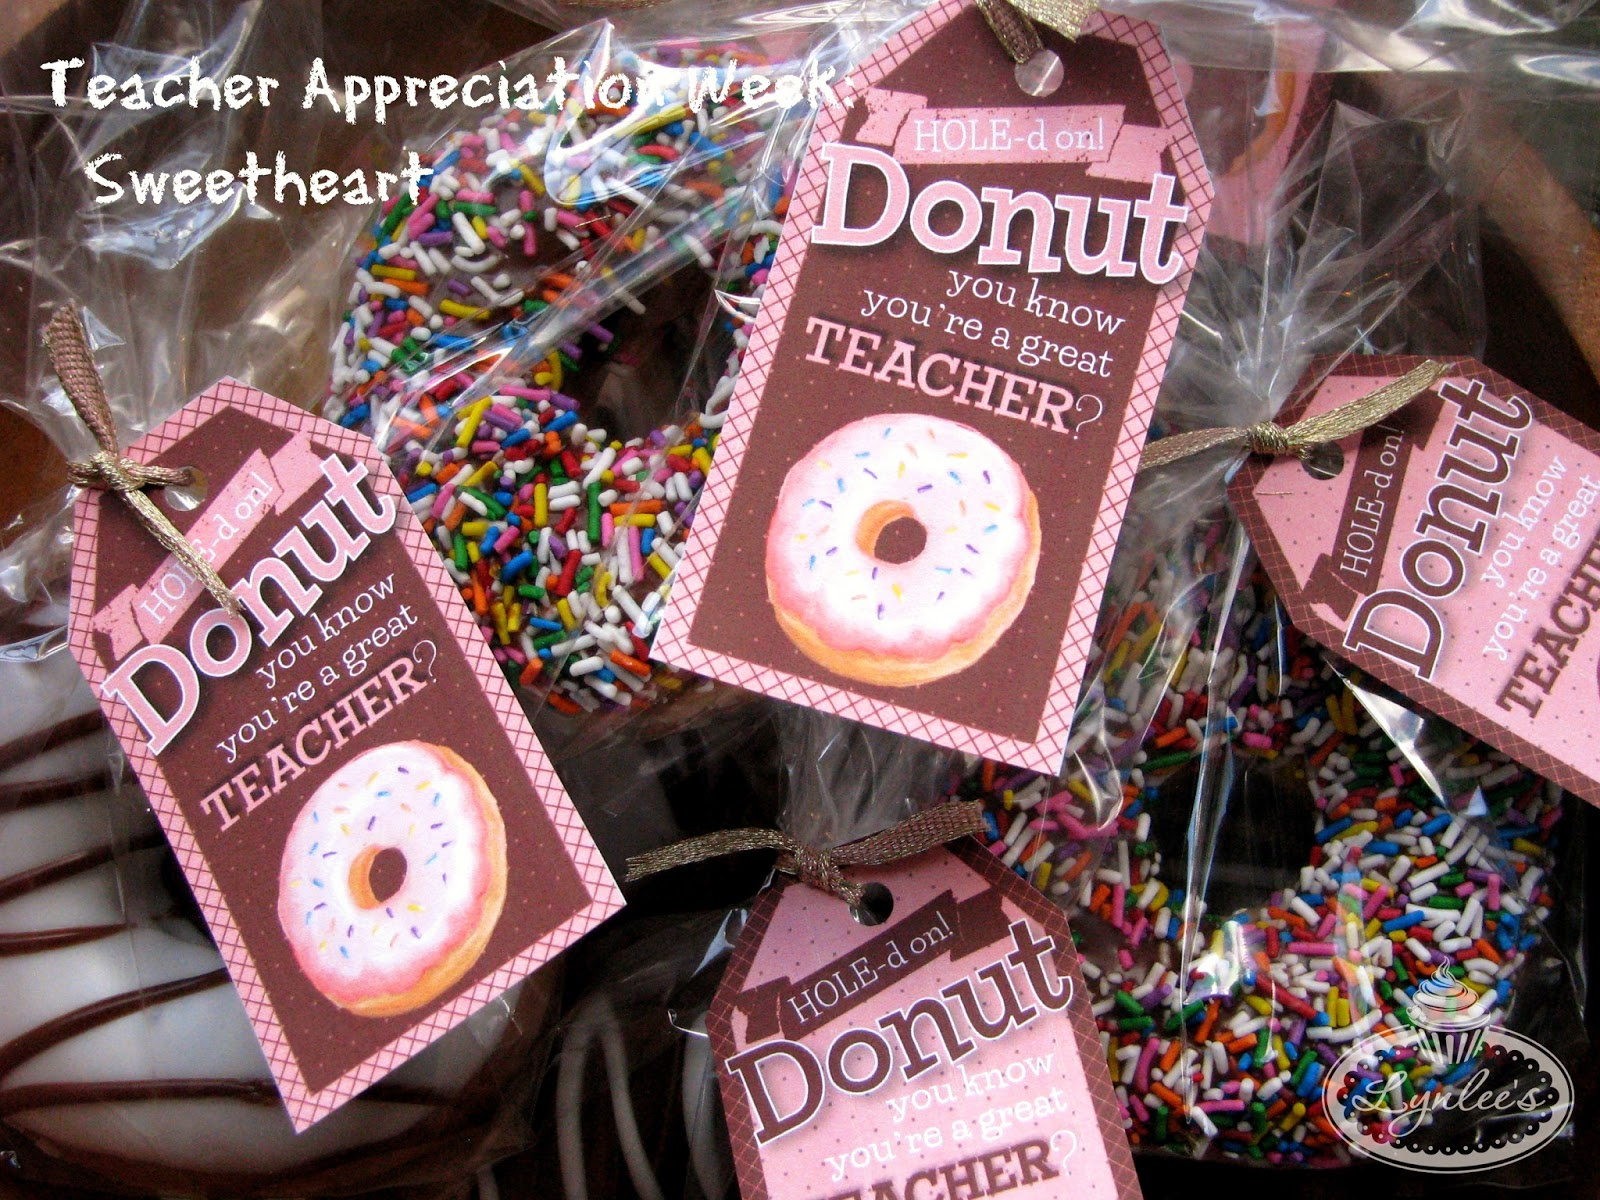 Teacher appreciation week lynlees teacher appreciation week negle Choice Image